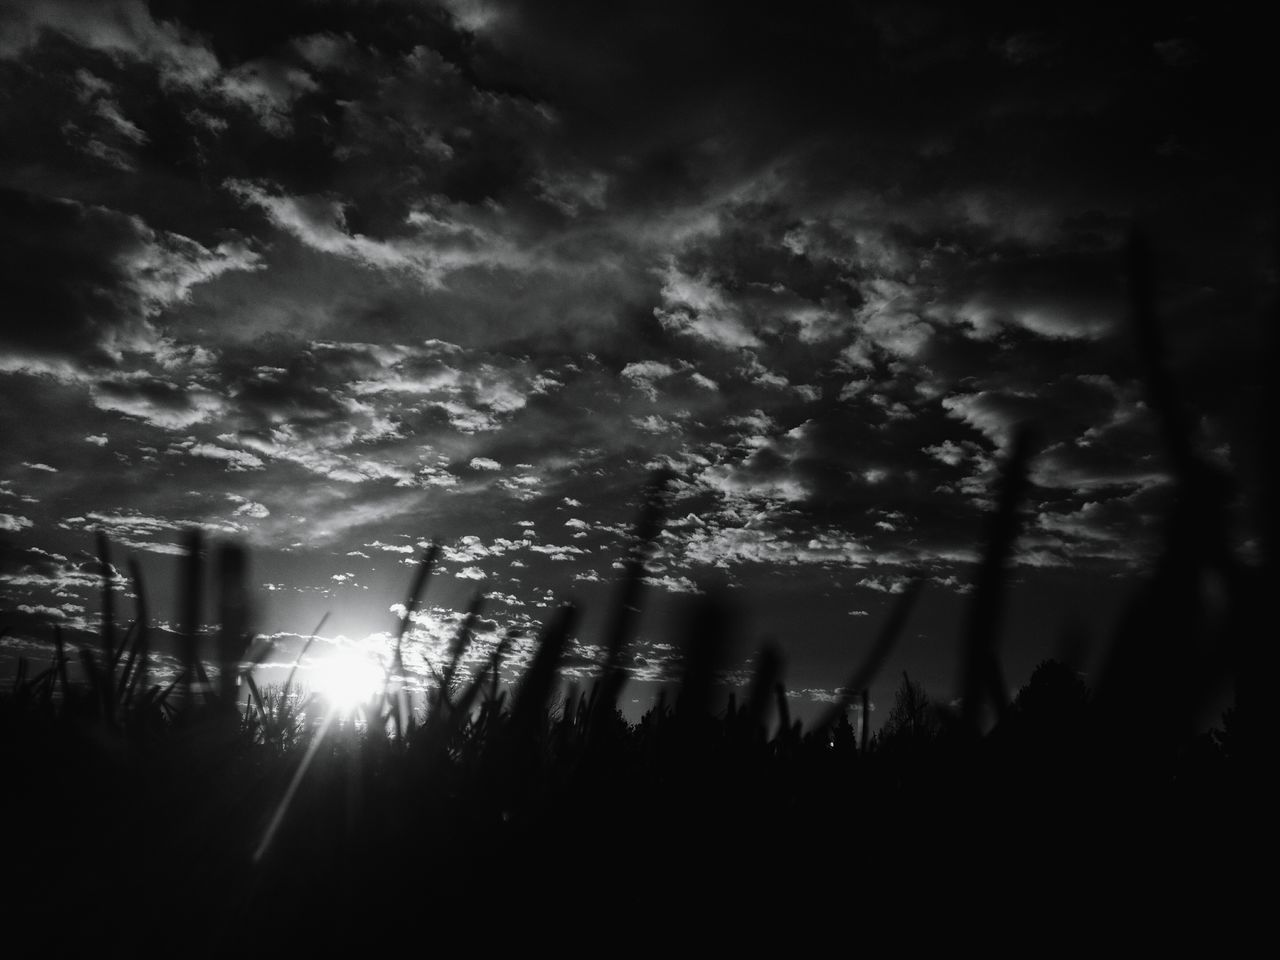 Morning In Mourning Silhouette Morning Sun Macabre Photo Macabre Sunrise_Collection Warhol Inspired Dramatic Sky Sunrise Silhouettes Landscape Silhouette Beauty In Nature Landscape Fall Collection Black And White Collection  Blackandwhite Sunbeam Sunrise Sunrays October Dark Clouds Darkart Cloudscape Grass Autumn Low Angle View